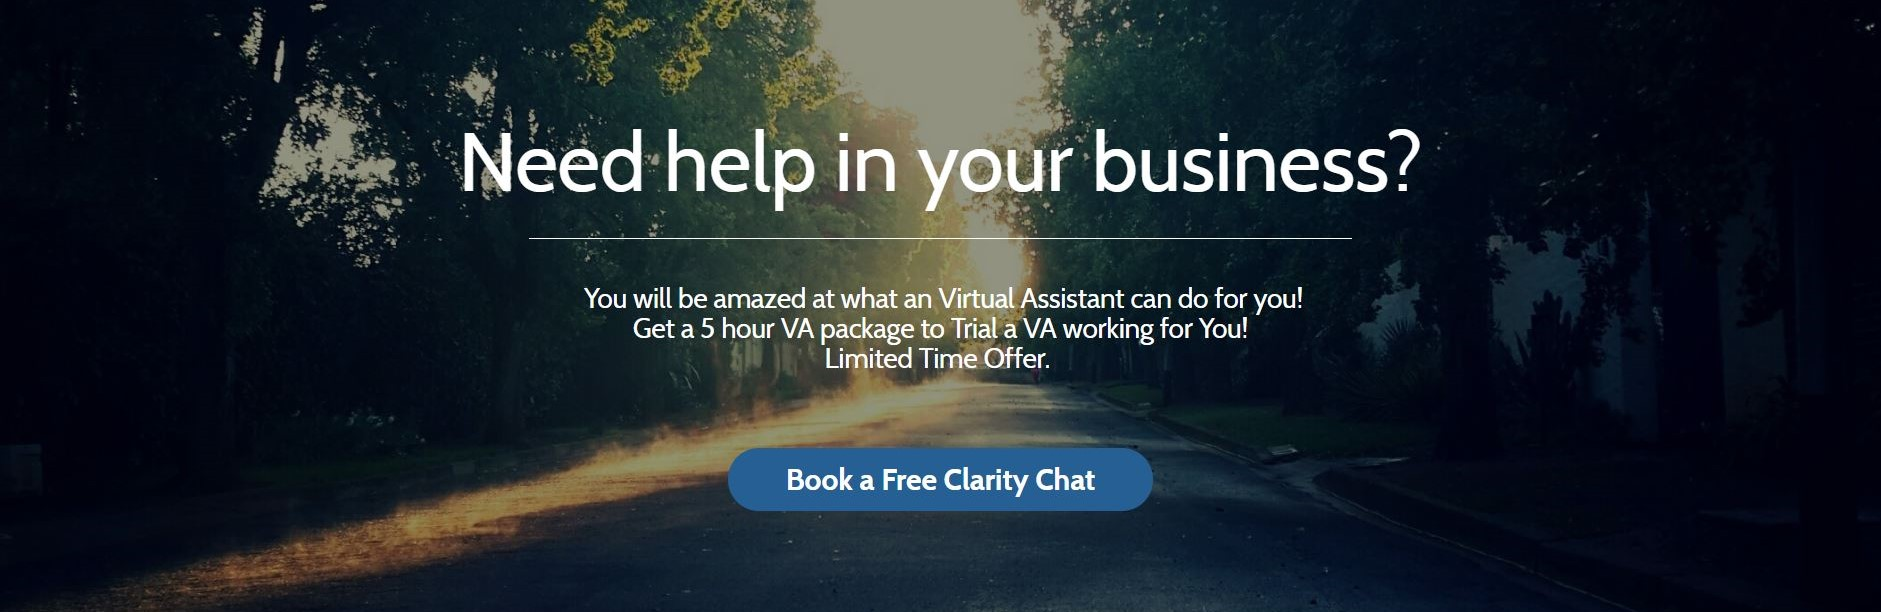 Need Help in Your Business?